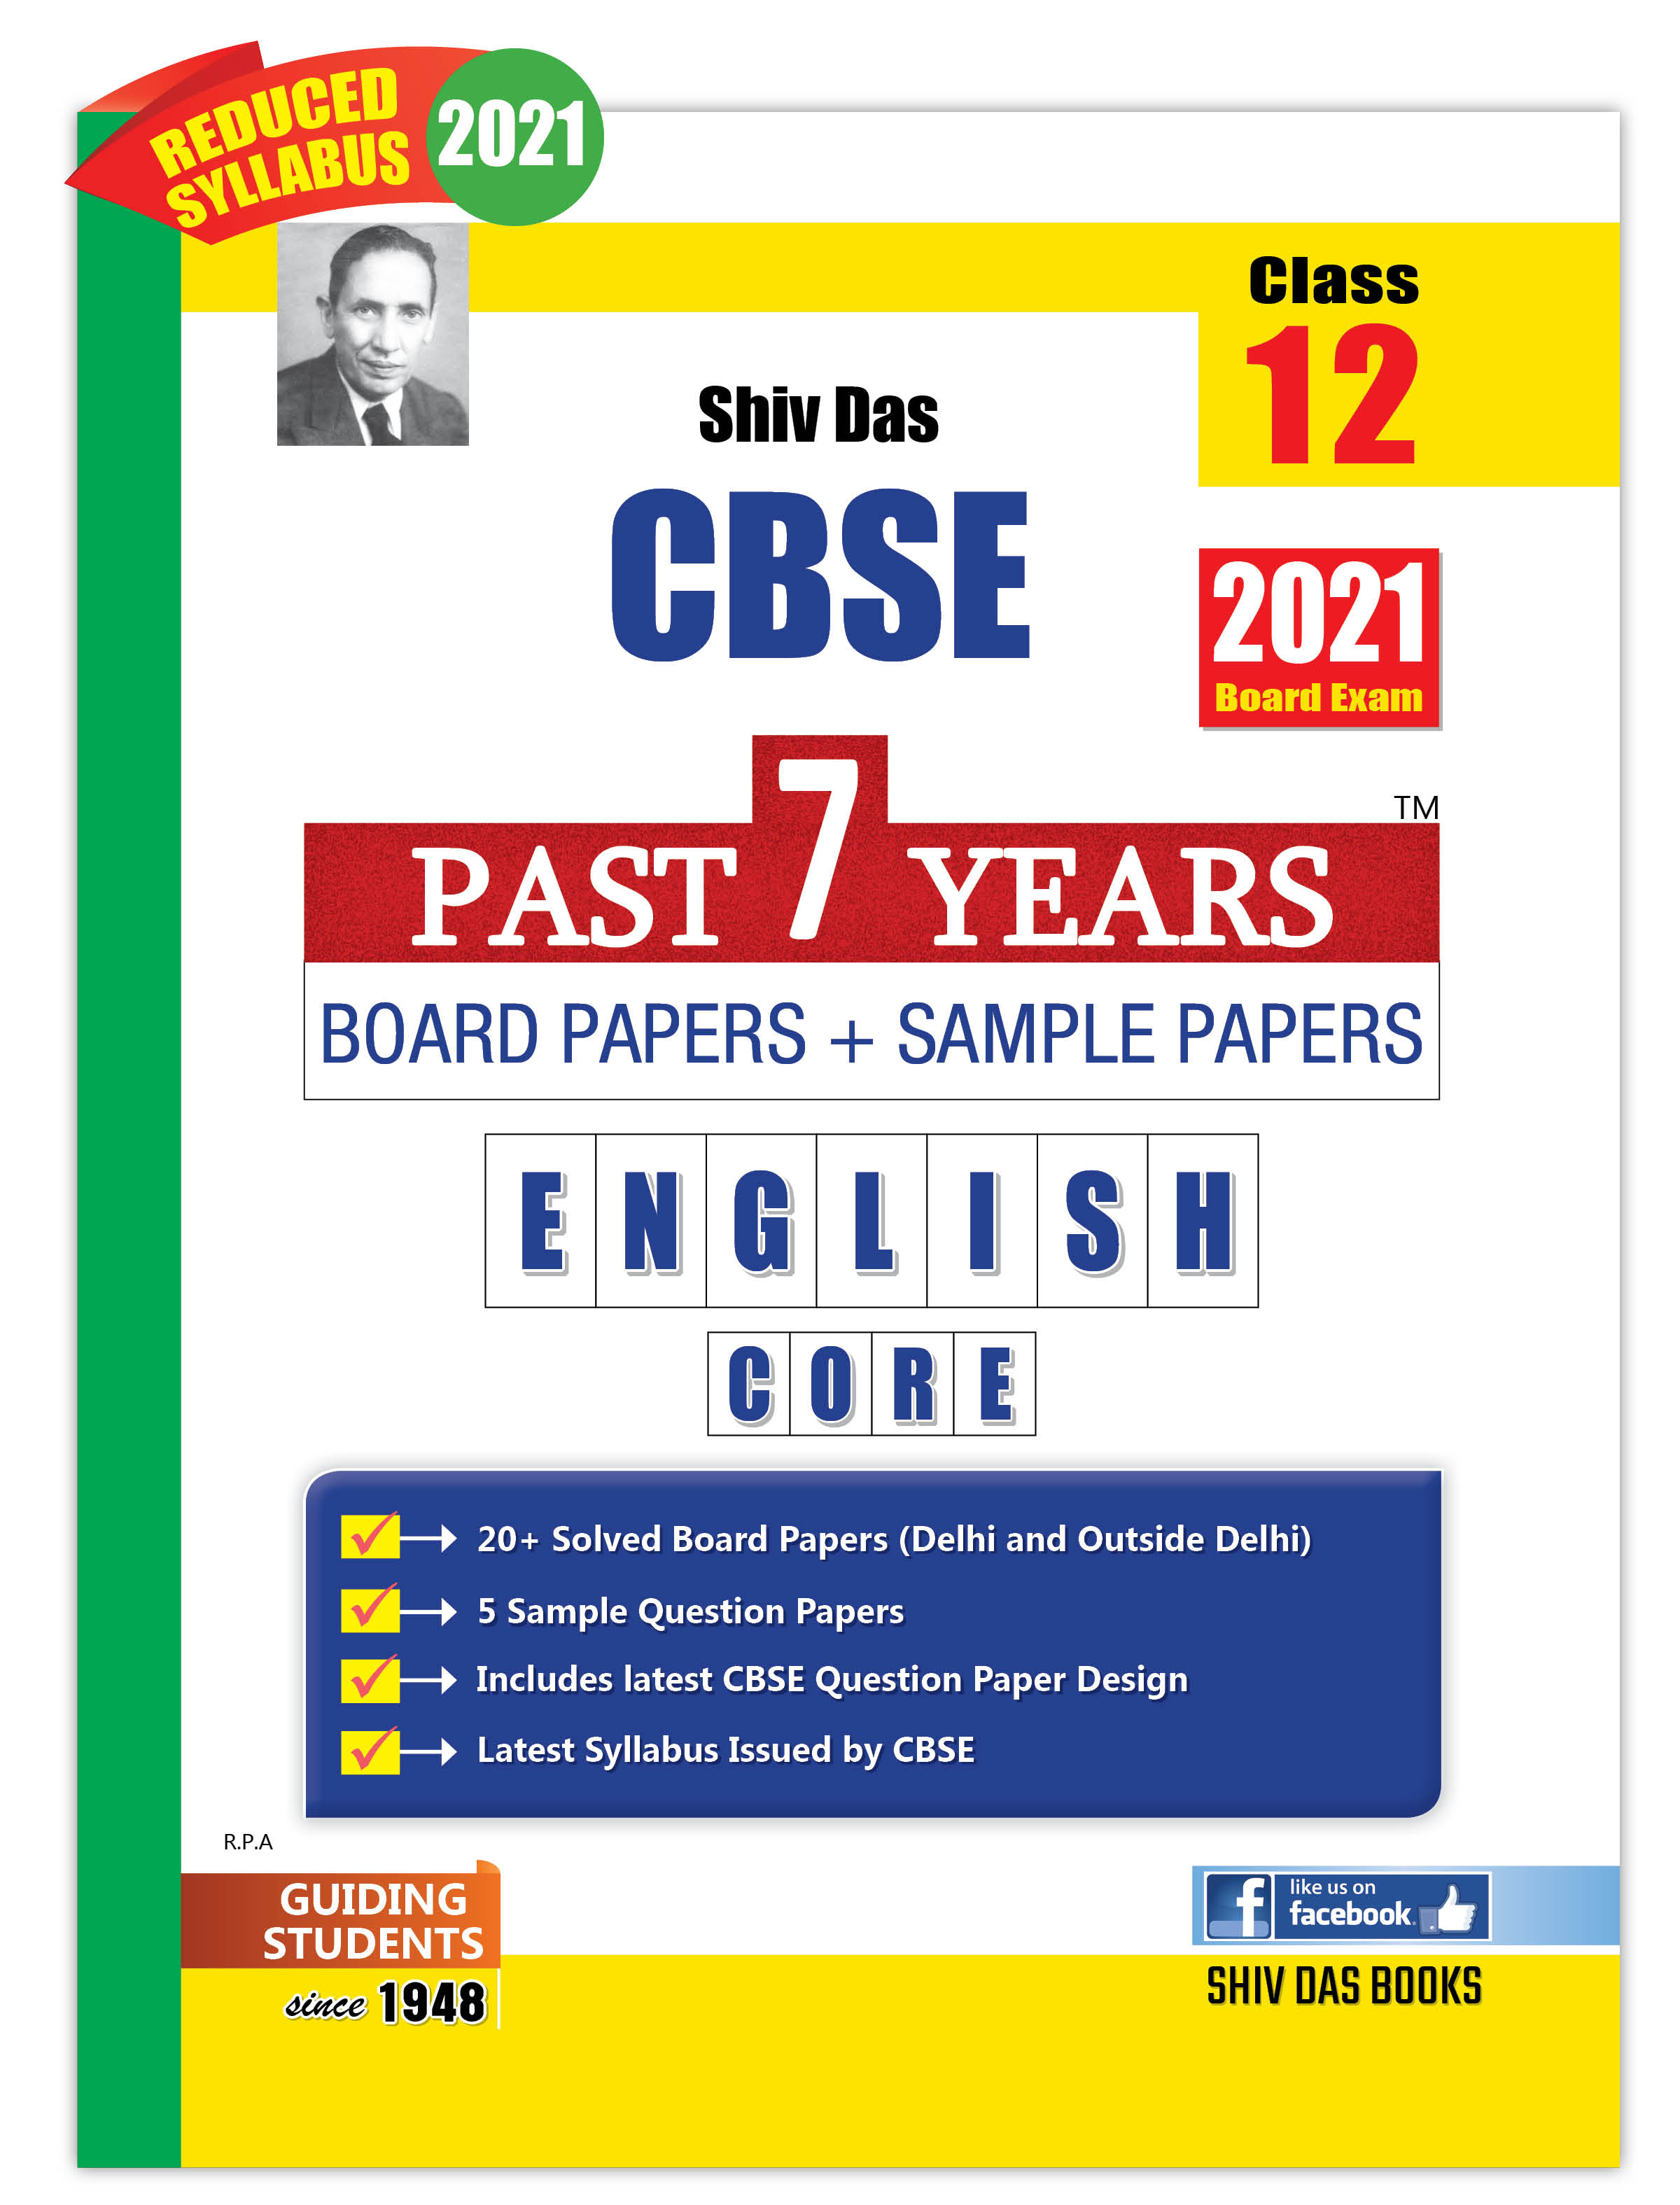 CBSE Past 7 Years Solved Board Papers and Sample Papers for Class 12 English Core By SHIVDAS (2021 Board Exam Edition)